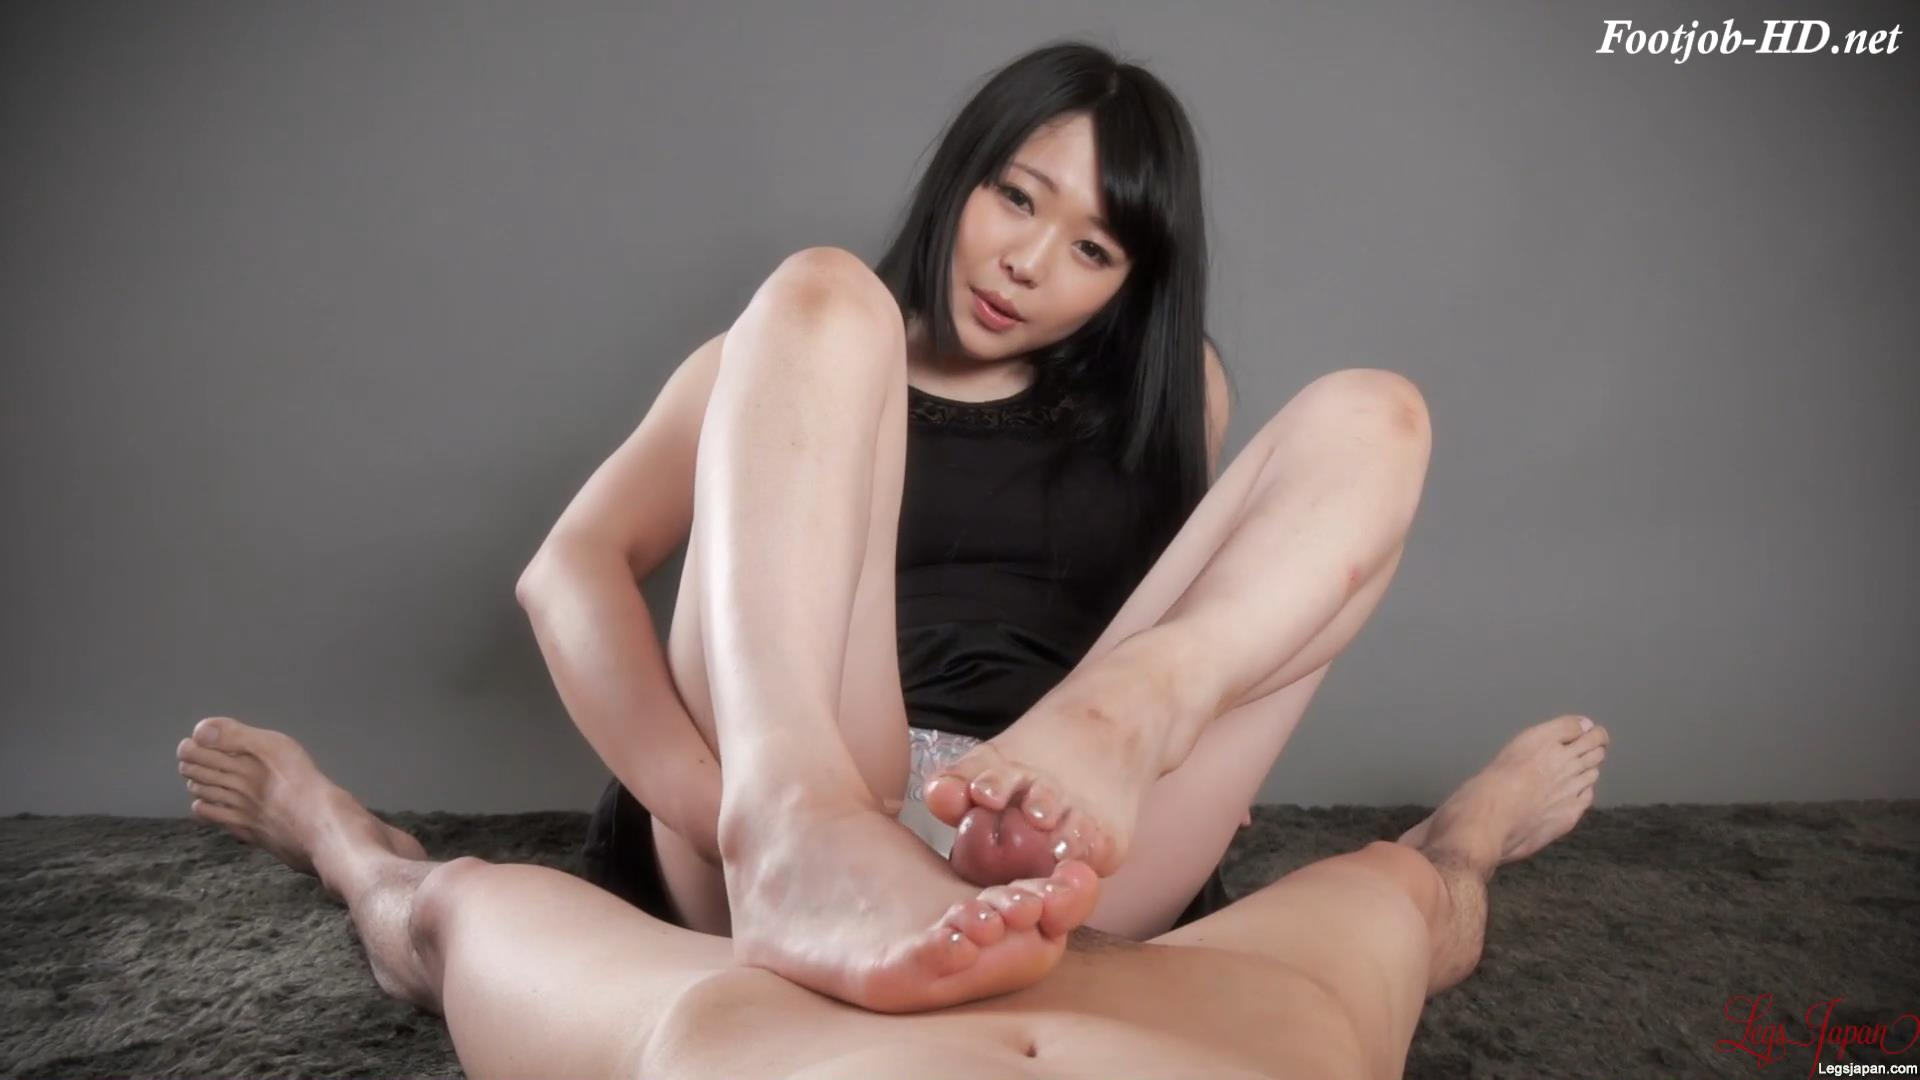 Footjob in Black Dress – Legs Japan – Yui Kawagoe